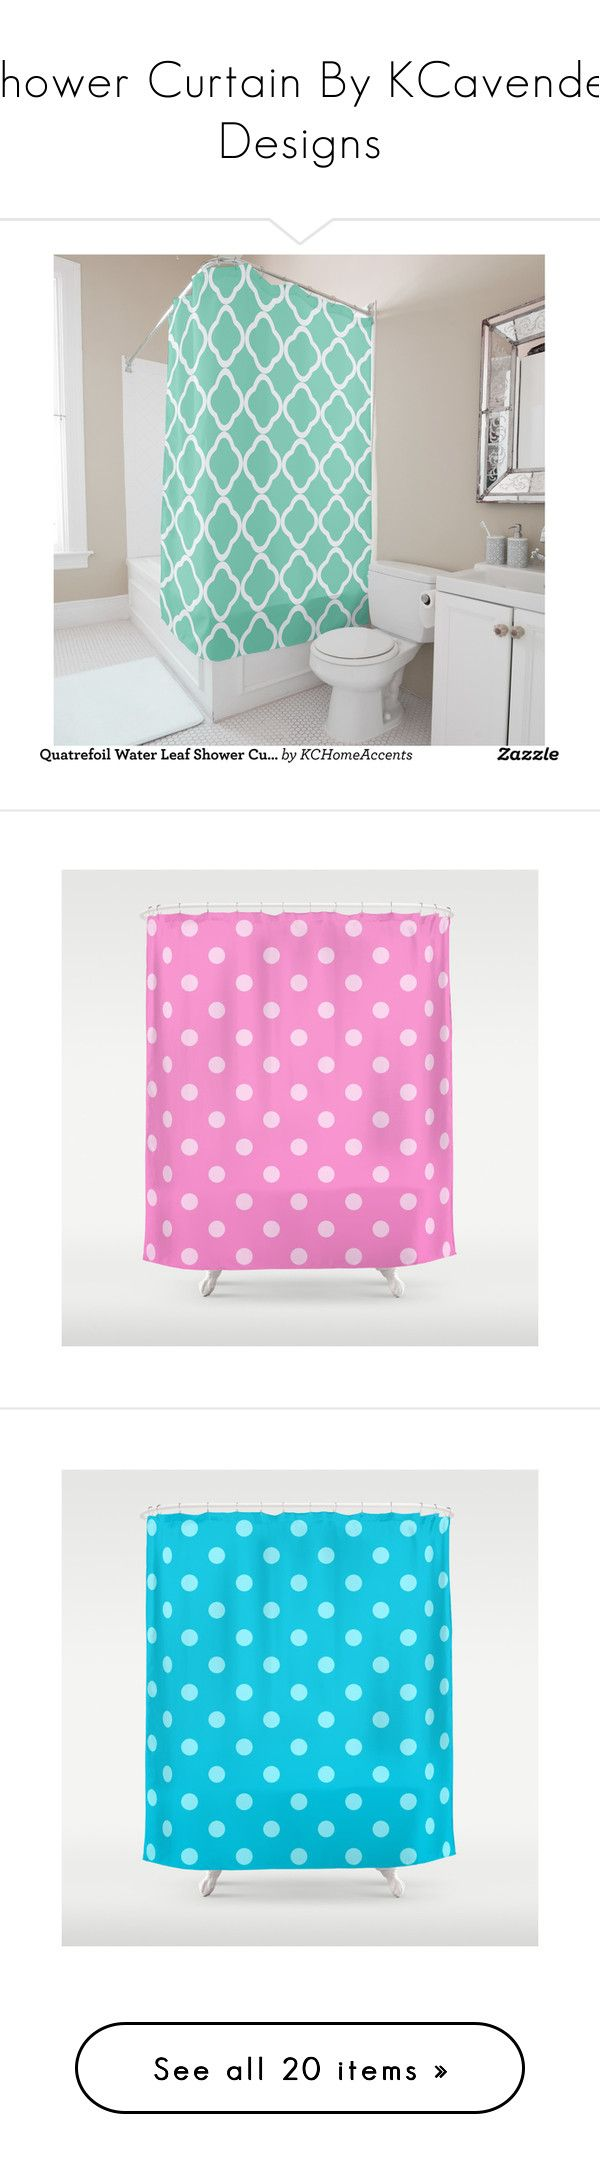 """Shower Curtain By KCavender Designs"" by kelly-cavender ❤ liked on Polyvore featuring home, bed & bath, bath, shower curtains, green shower curtains, polka dot shower curtains, pink shower curtains, aqua shower curtains, purple shower curtains and shower curtain"